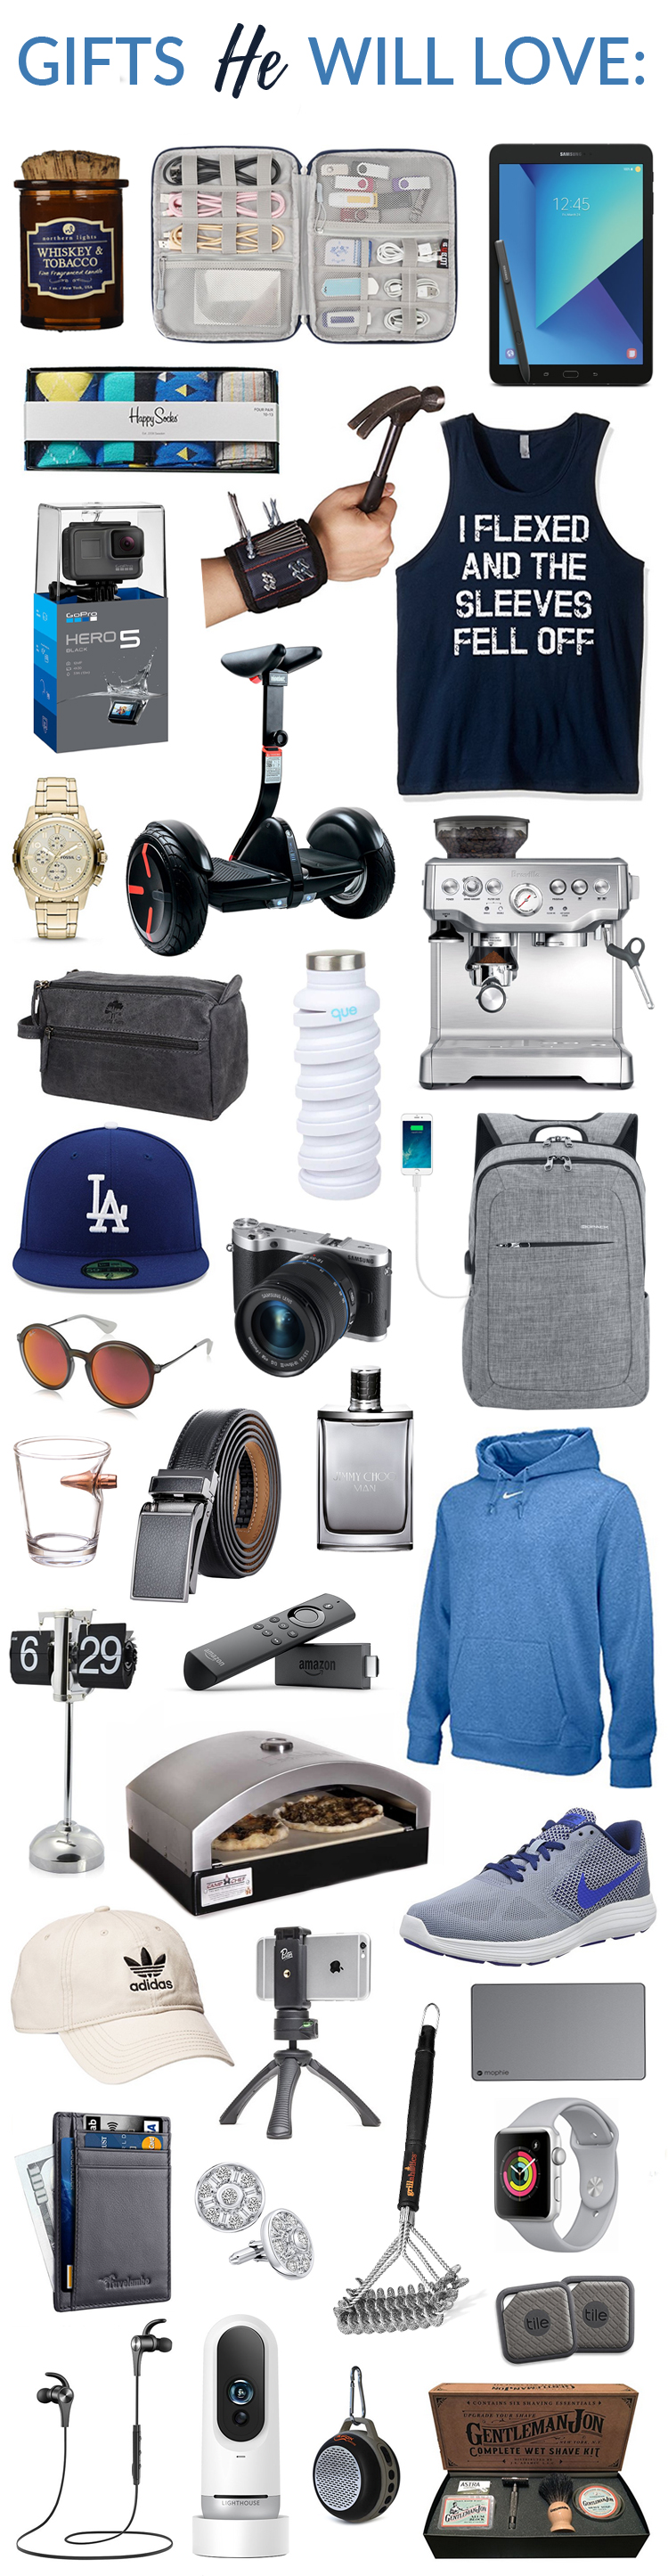 Gift Ideas for Him - Gifts for Father's Day - gift idea for boyfriend - gift guide for men - Need ideas on what to get your boyfriend, best friend, brother, uncle, dad, etc. for their birthday, Father's Day, Christmas, anniversary or any other holiday?  Check these out!